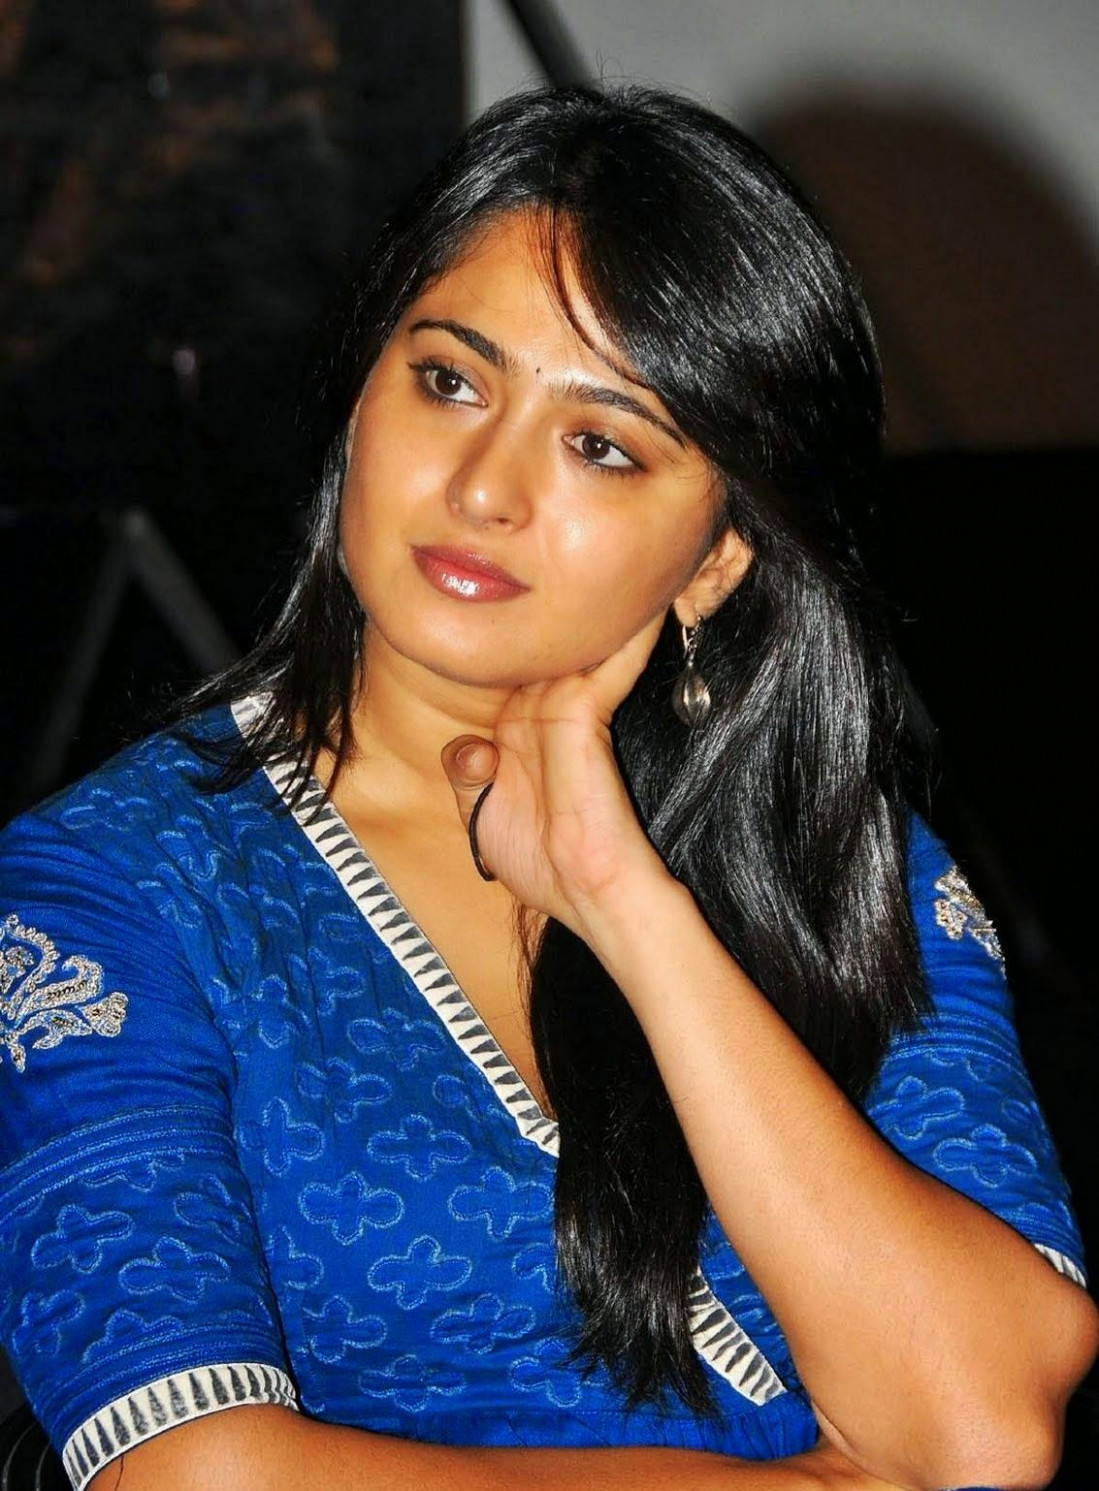 Tollywood Actress Anushka Shetty Hot Smiling Face Photos ..